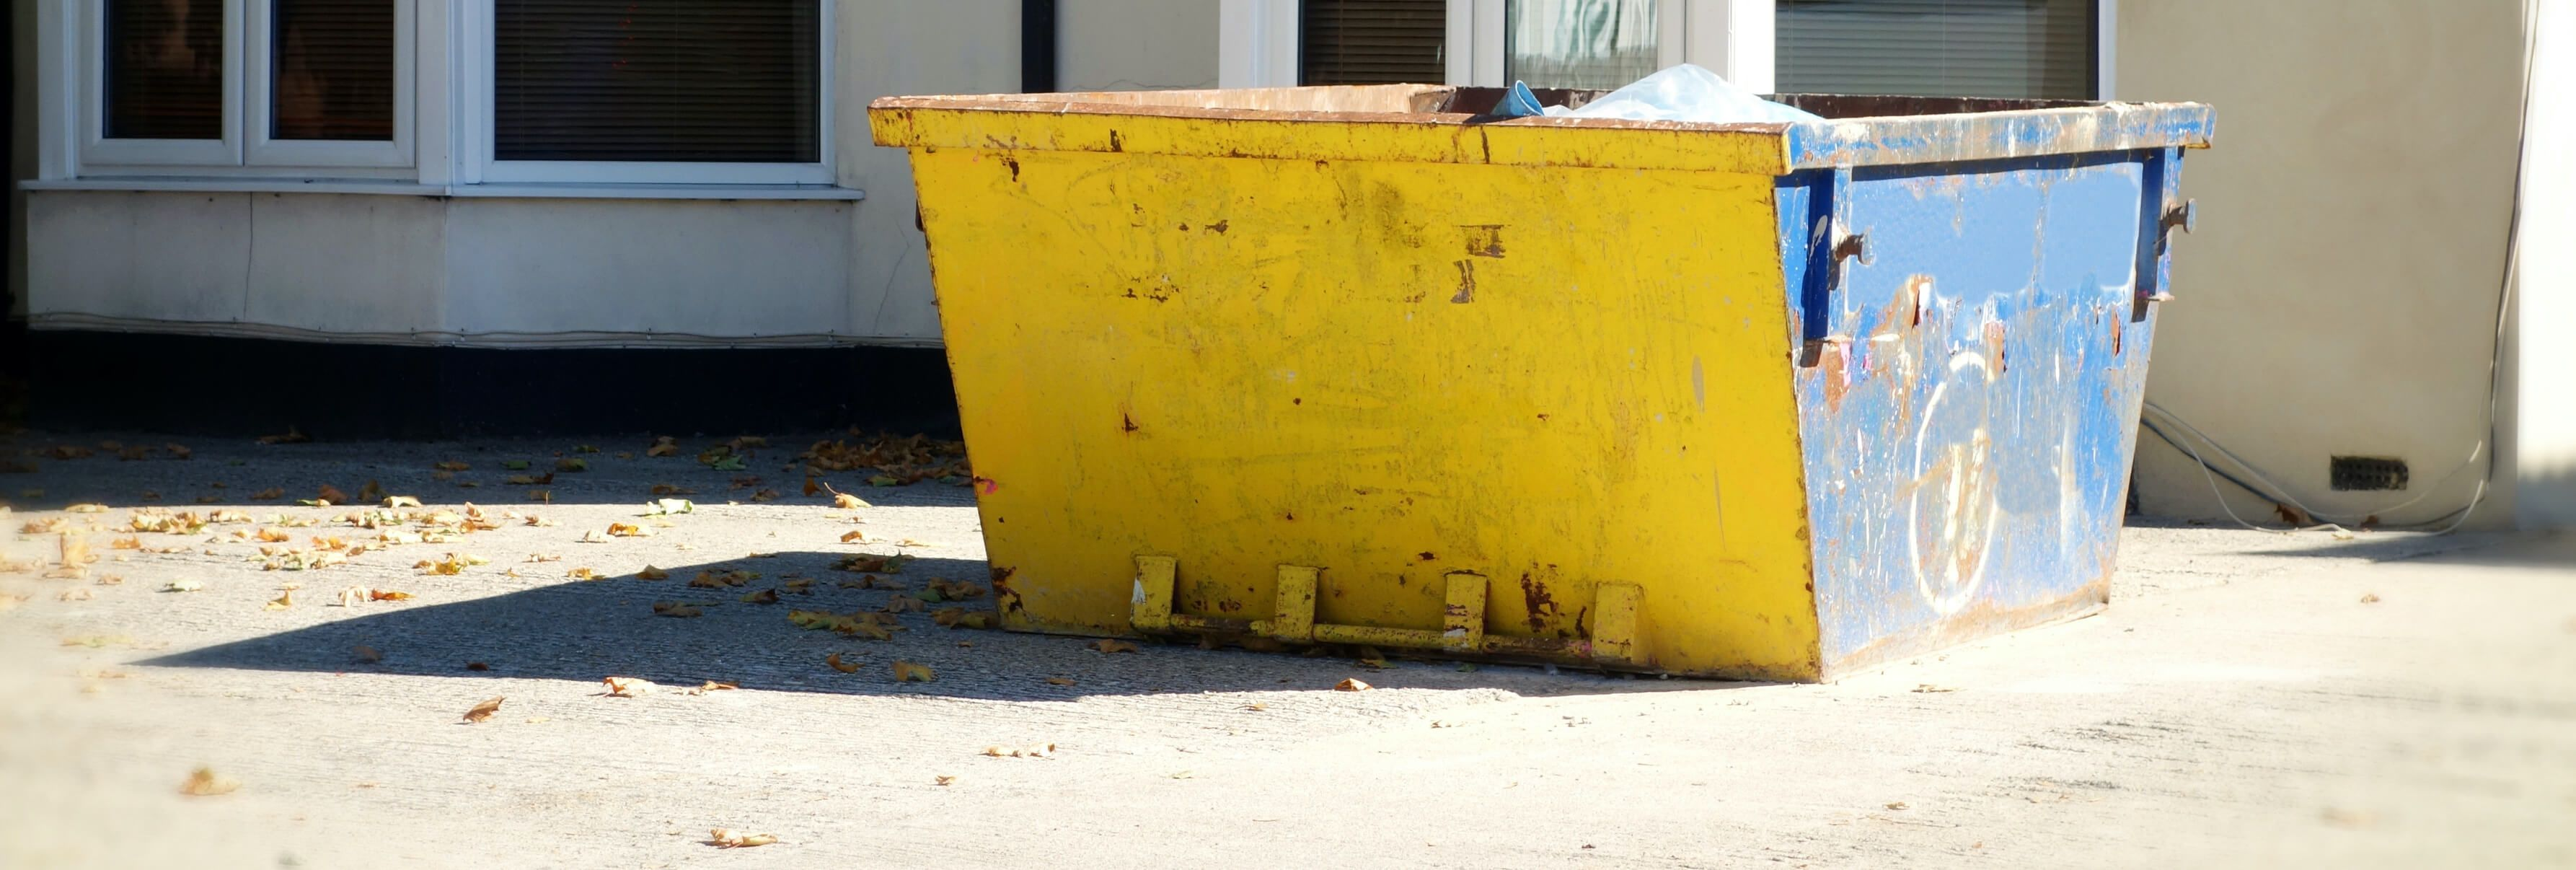 Skip Hire Rubbish Removal: How to Save Money